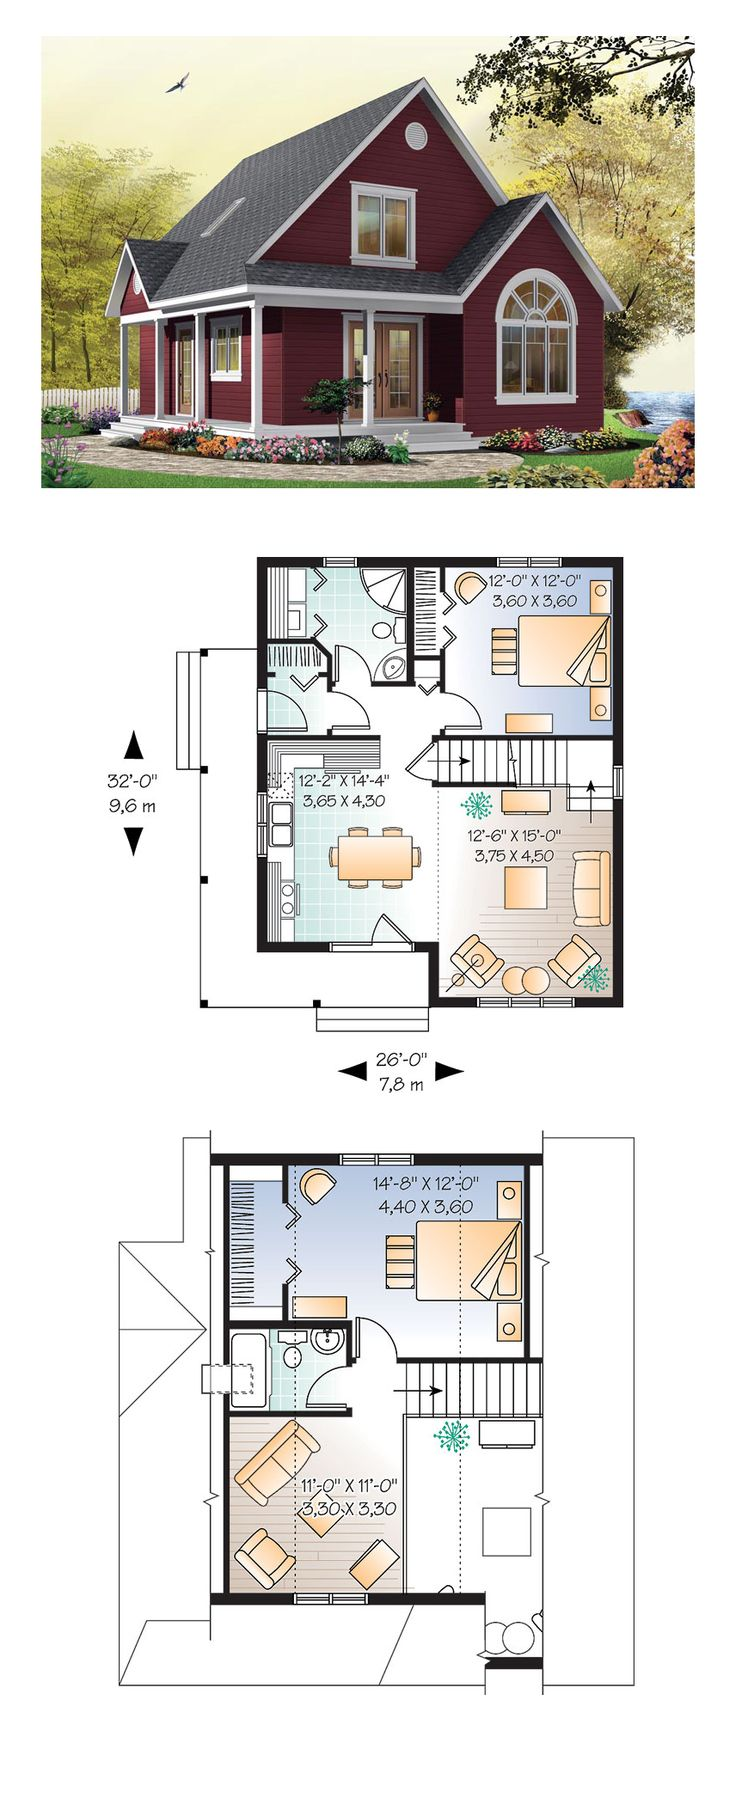 best 25 small homes ideas on pinterest small home plans tiny cottage floor plans and dog house blueprints - Tiny House Plans 2